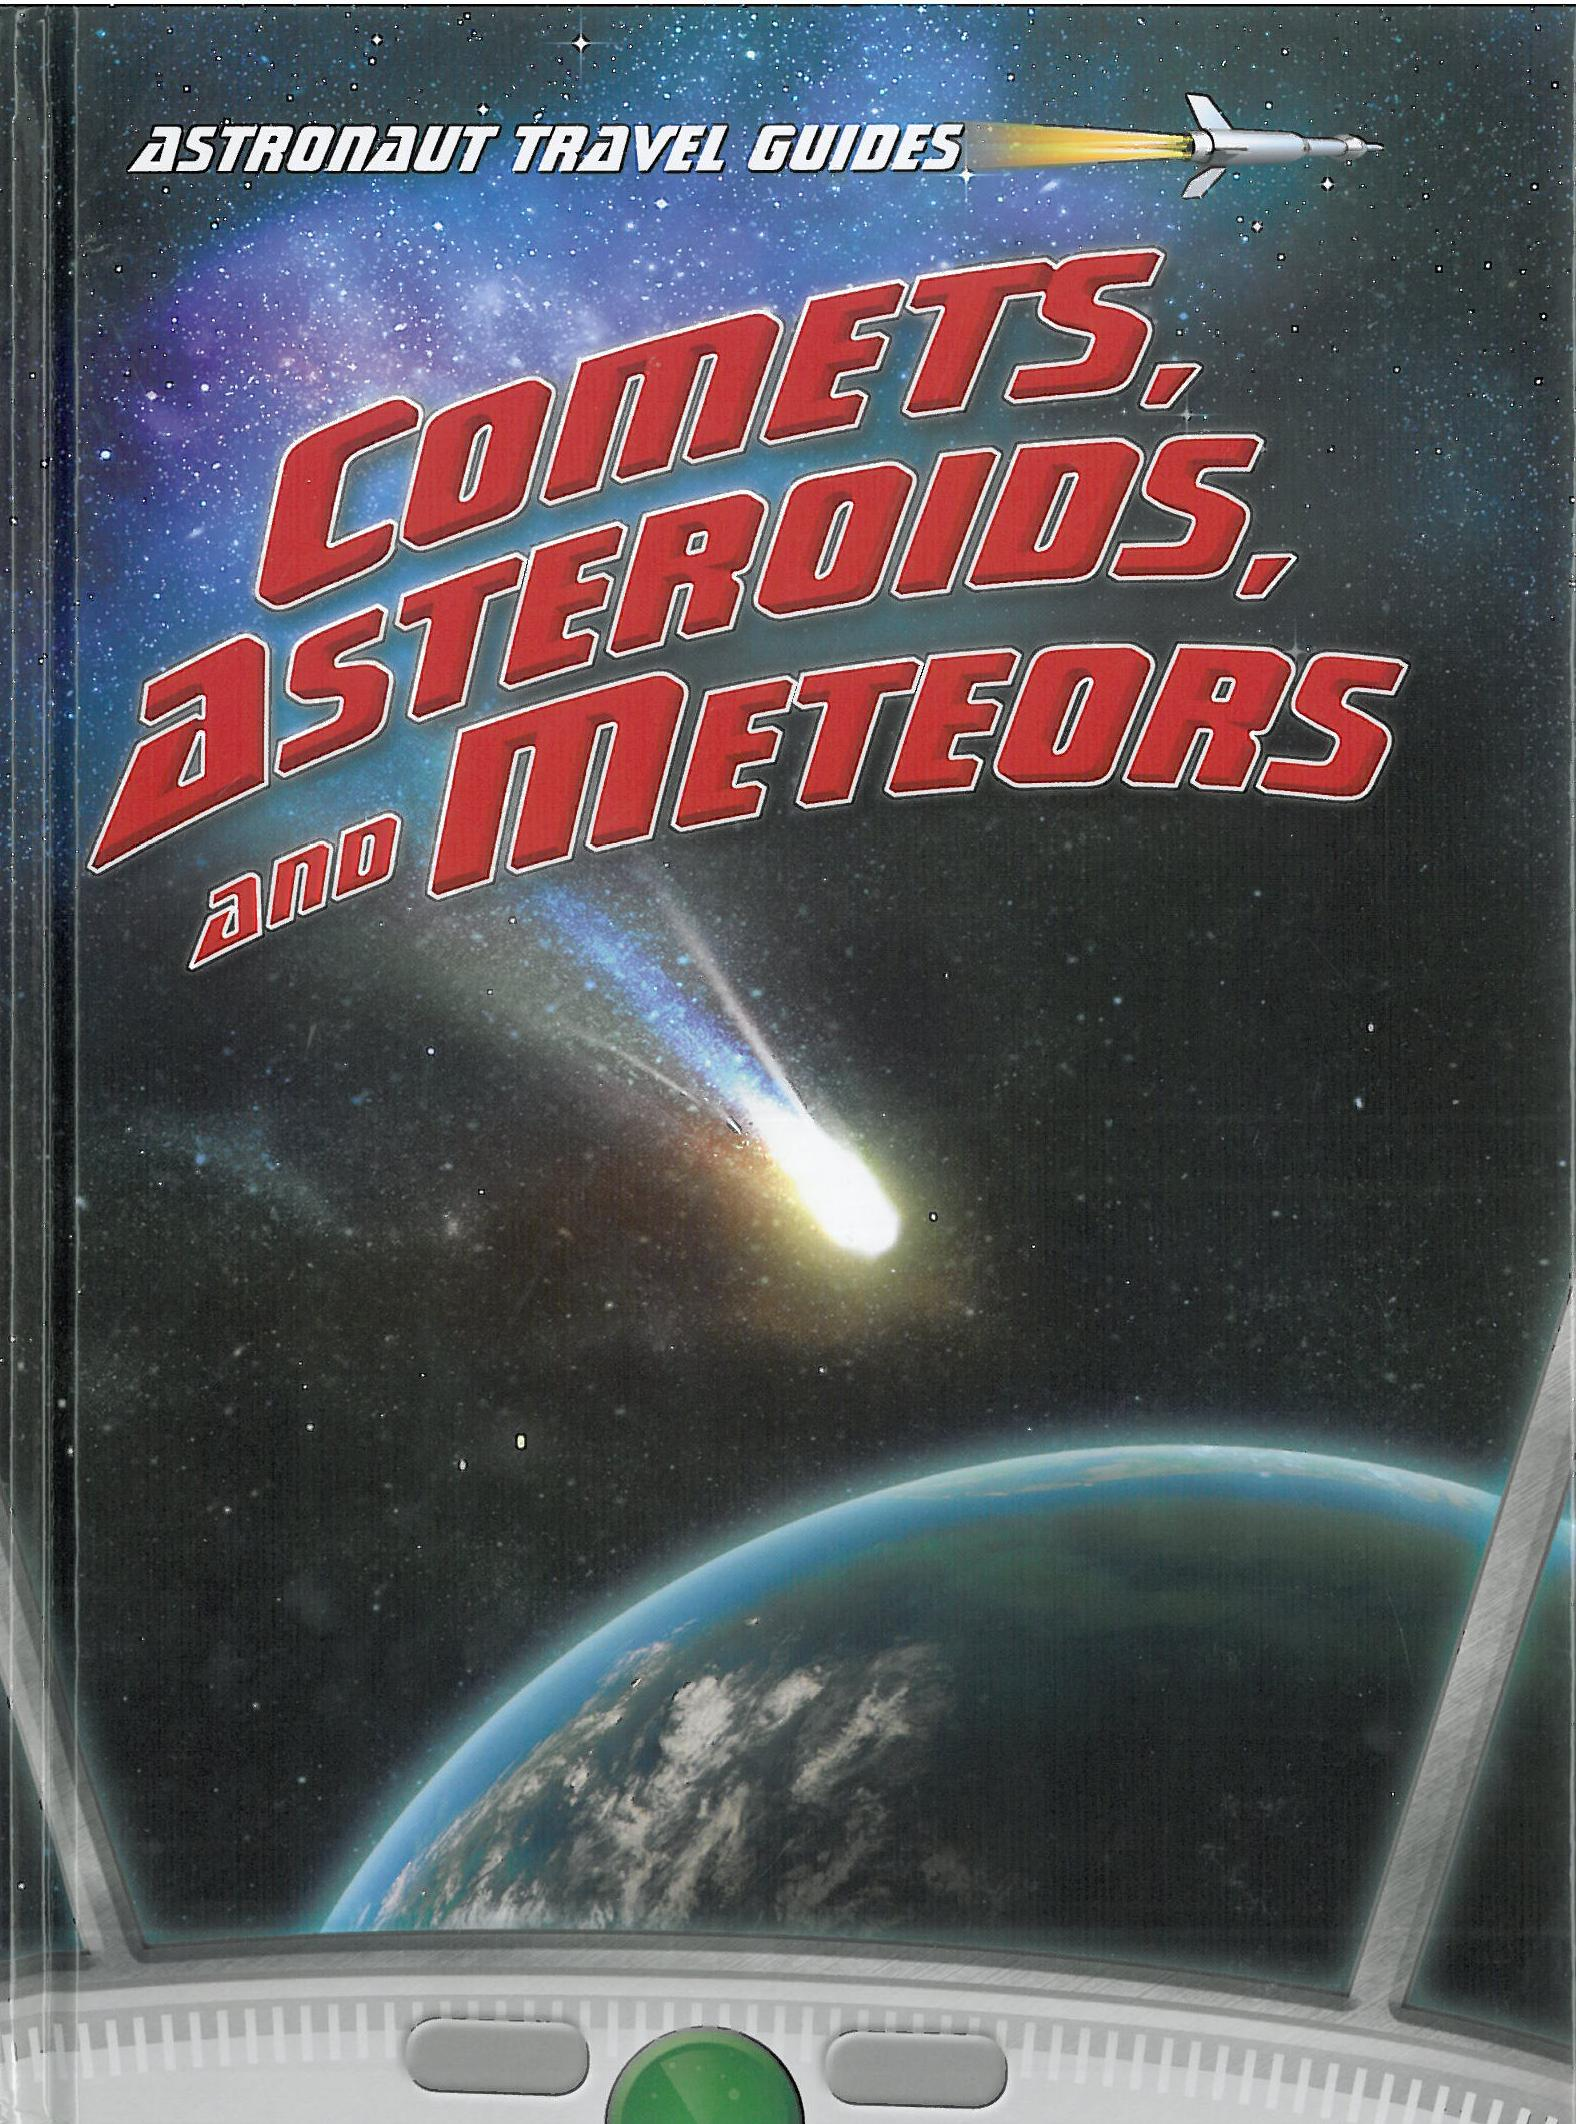 Astronaut Travel Guides - Comets, Asteroids, and Meteors